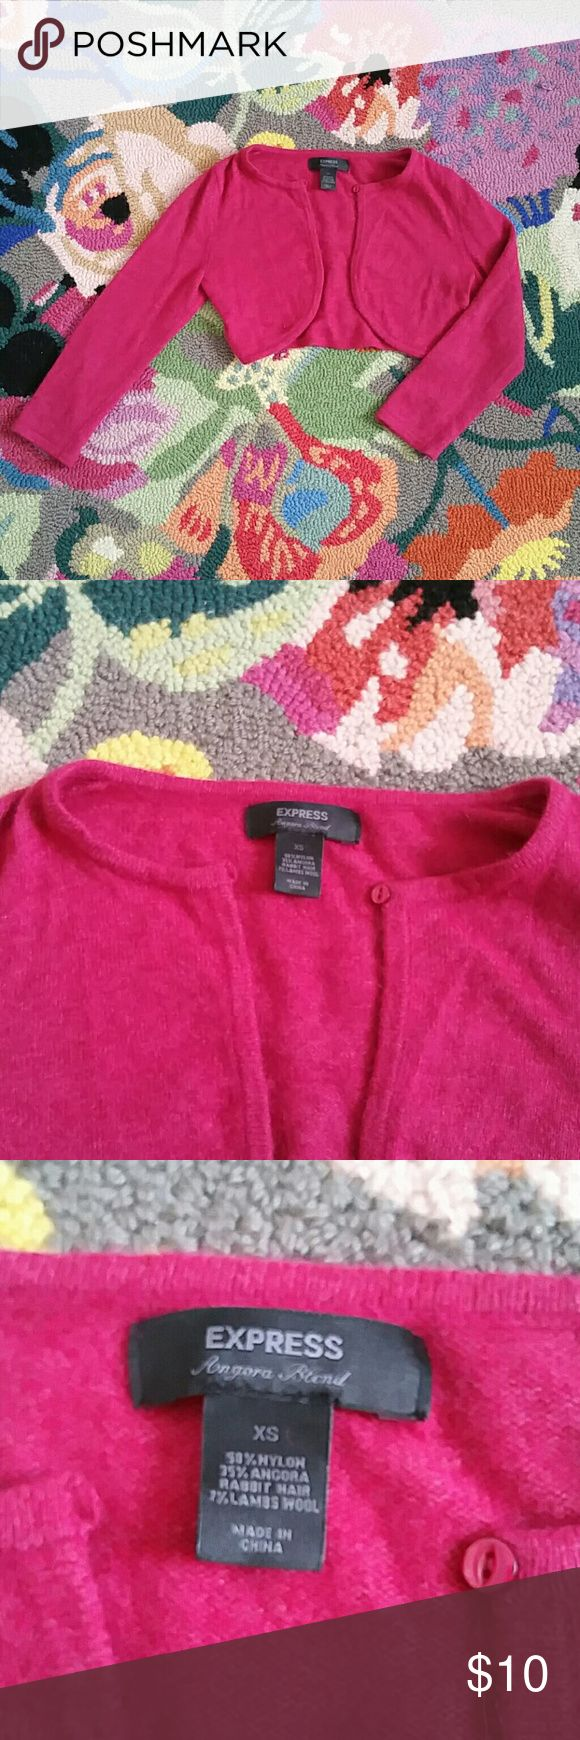 Express Cropped Angora Blend Cardigan Sweater Soft, hot pink cardigan sweater for layering! Would look super cute as a shrug to keep warm over dresses. In great, used condition with no visible defects. Please feel free to ask any questions! Express Sweaters Cardigans